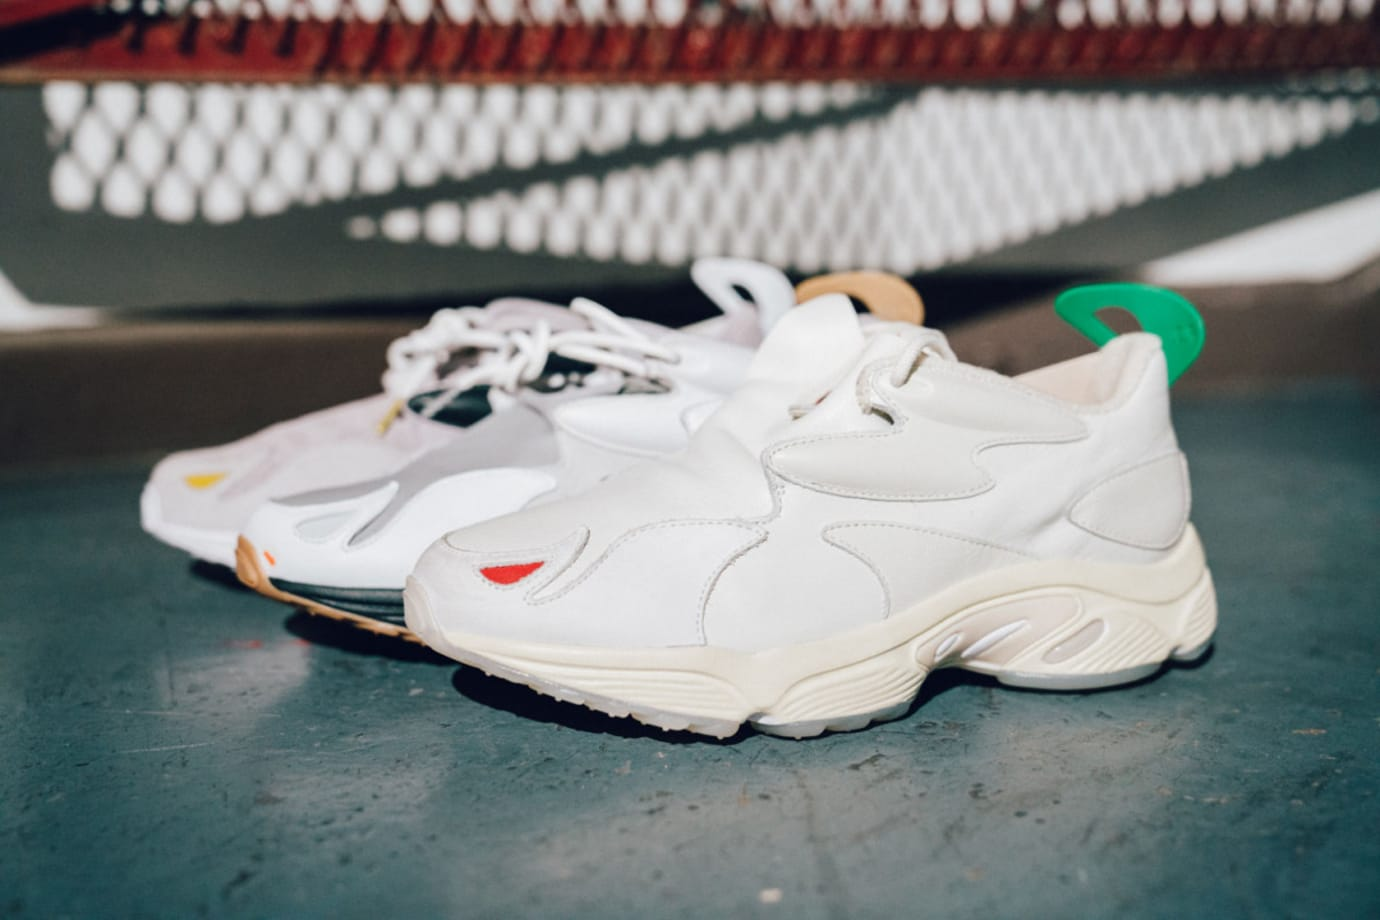 244bc9e5b45036 More Pyer Moss x Reebok DMX Are Releasing This Fall.